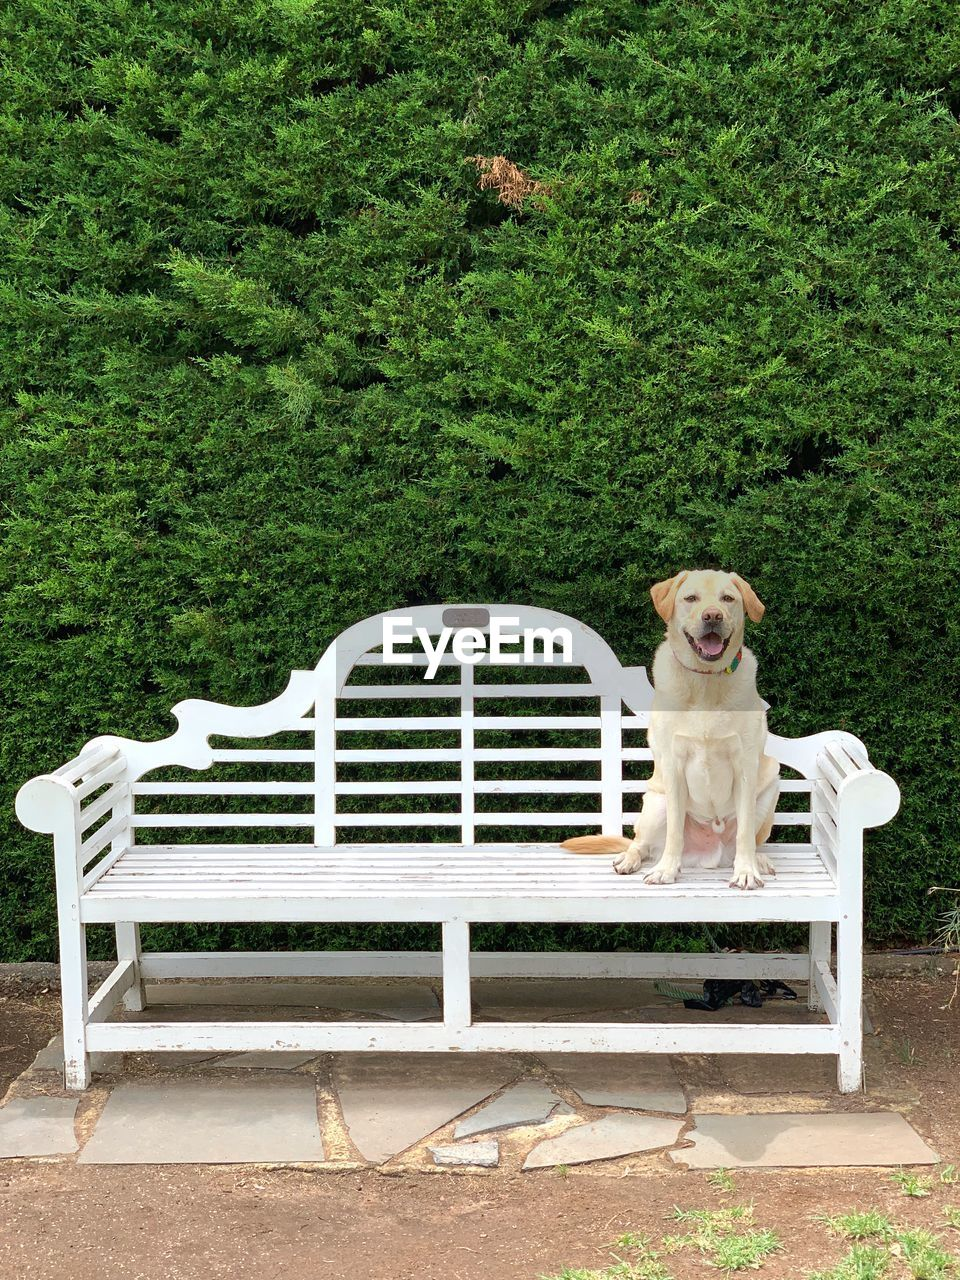 one animal, pets, dog, canine, domestic, seat, mammal, animal themes, animal, bench, domestic animals, plant, sitting, vertebrate, grass, green color, no people, relaxation, day, park, park bench